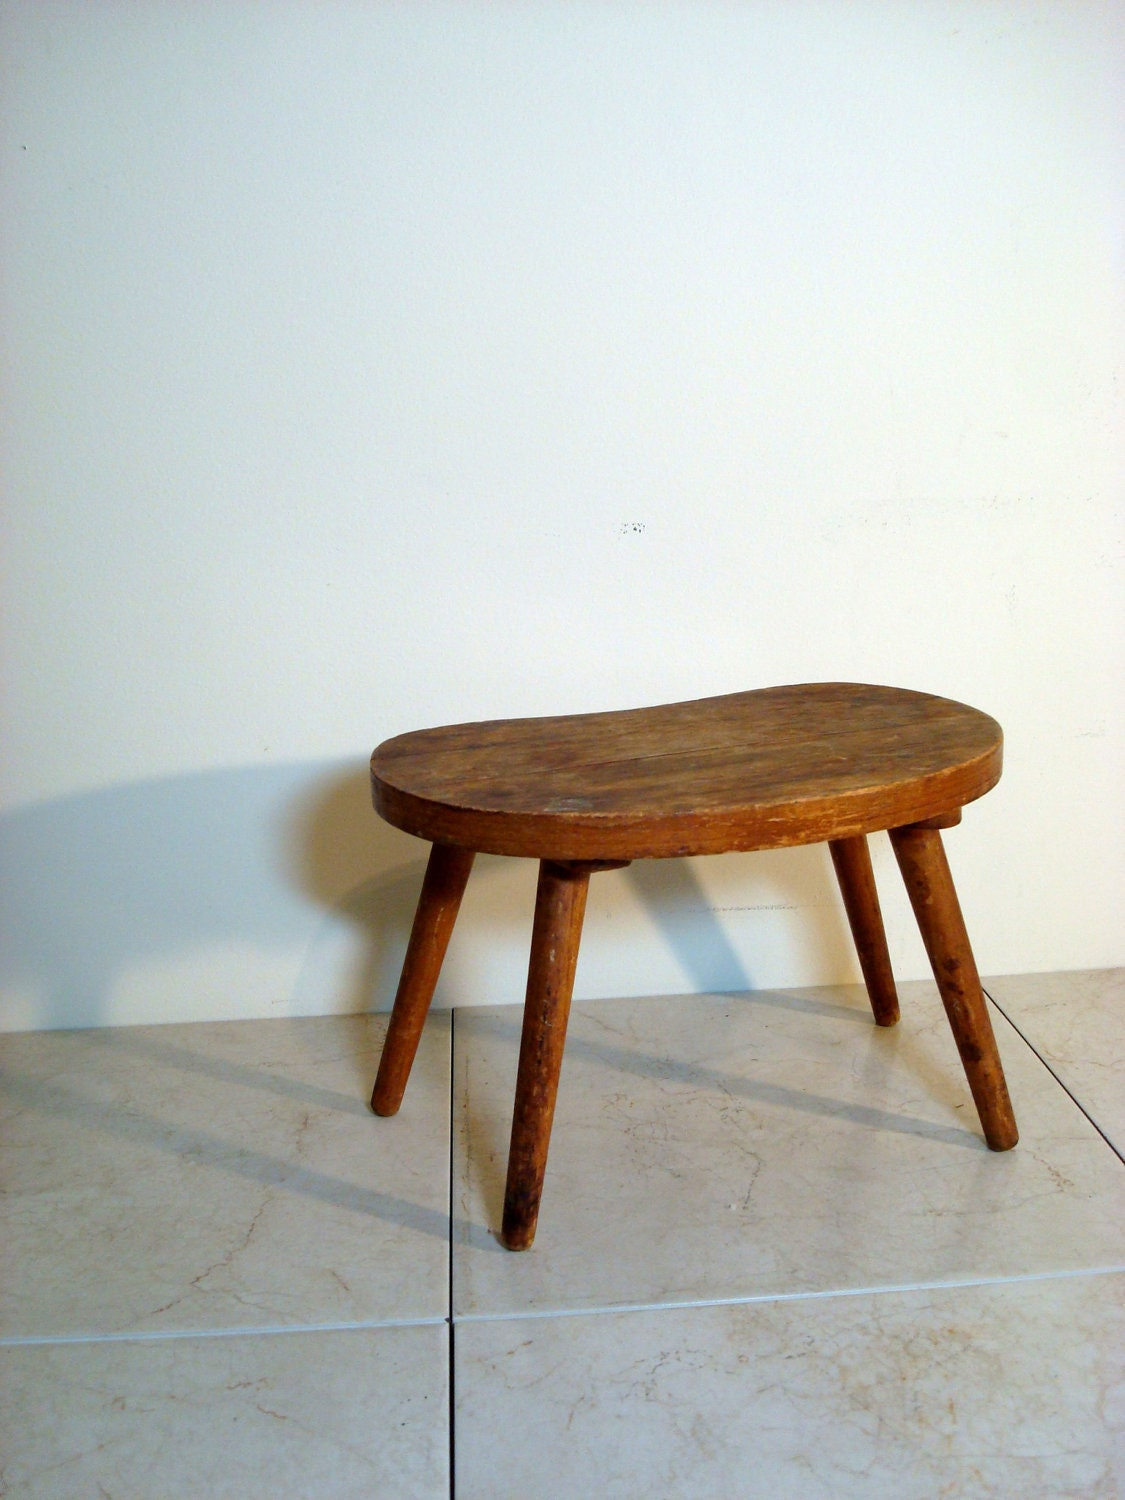 Vintage Small Wooden Handmade Milking Stool